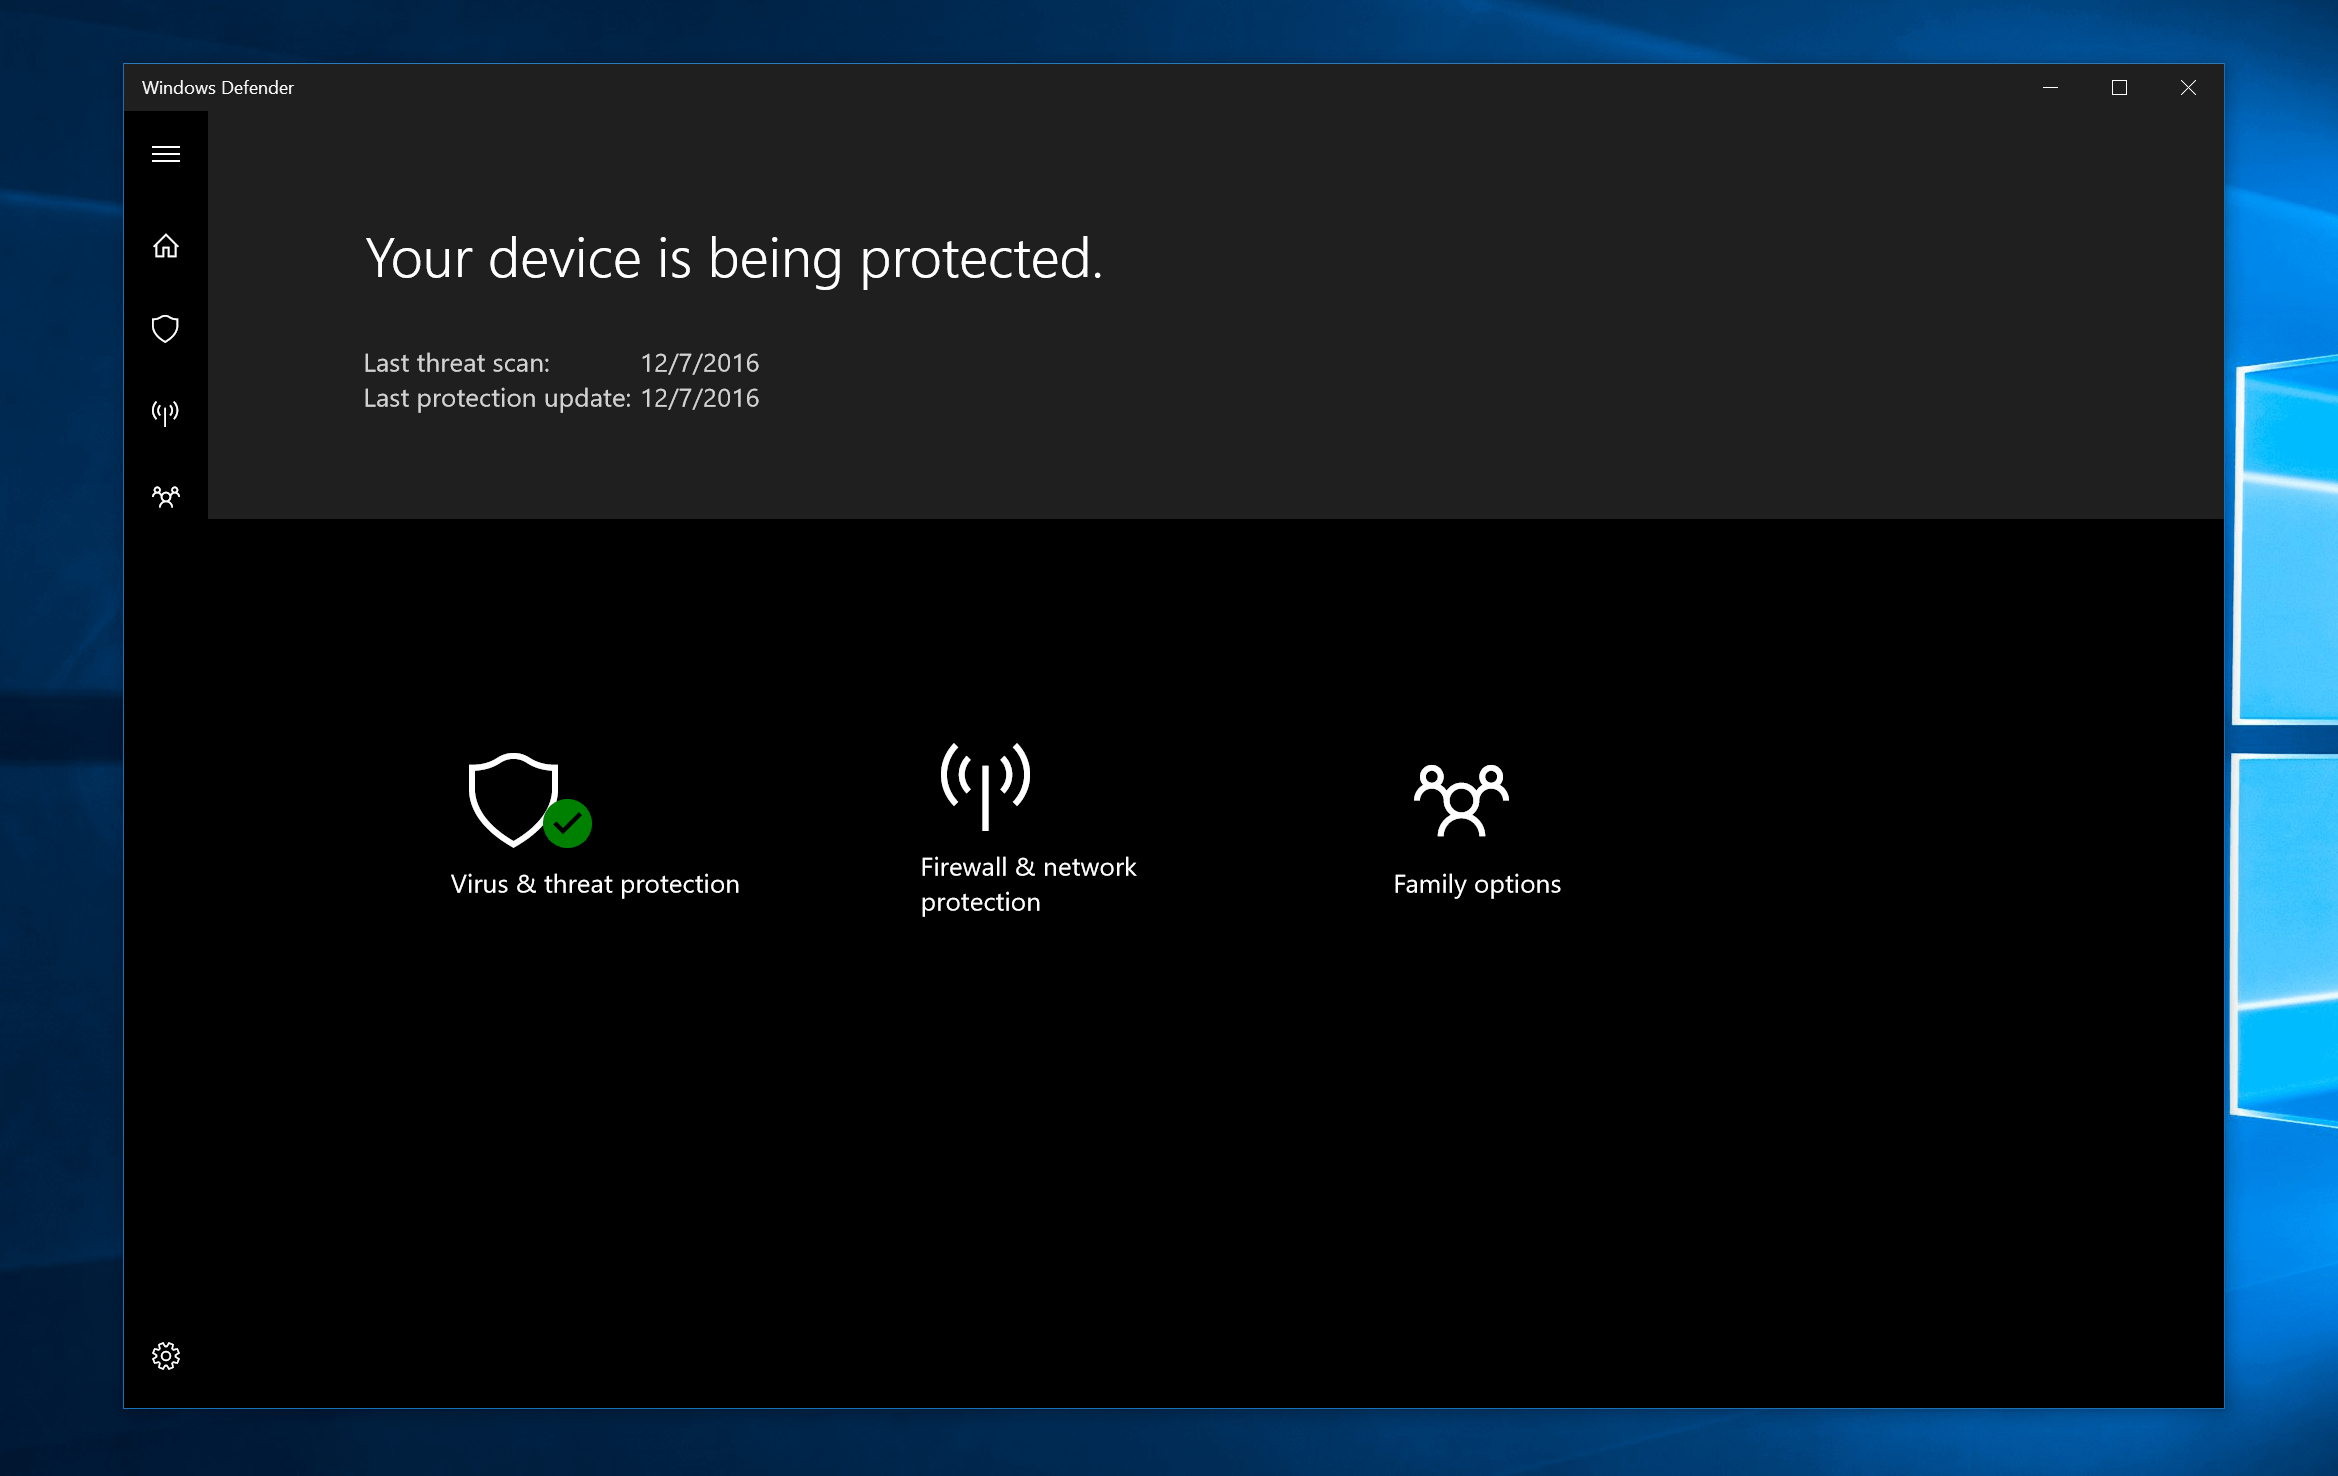 New Windows Defender Security Center Discussed In Microsoft Blog